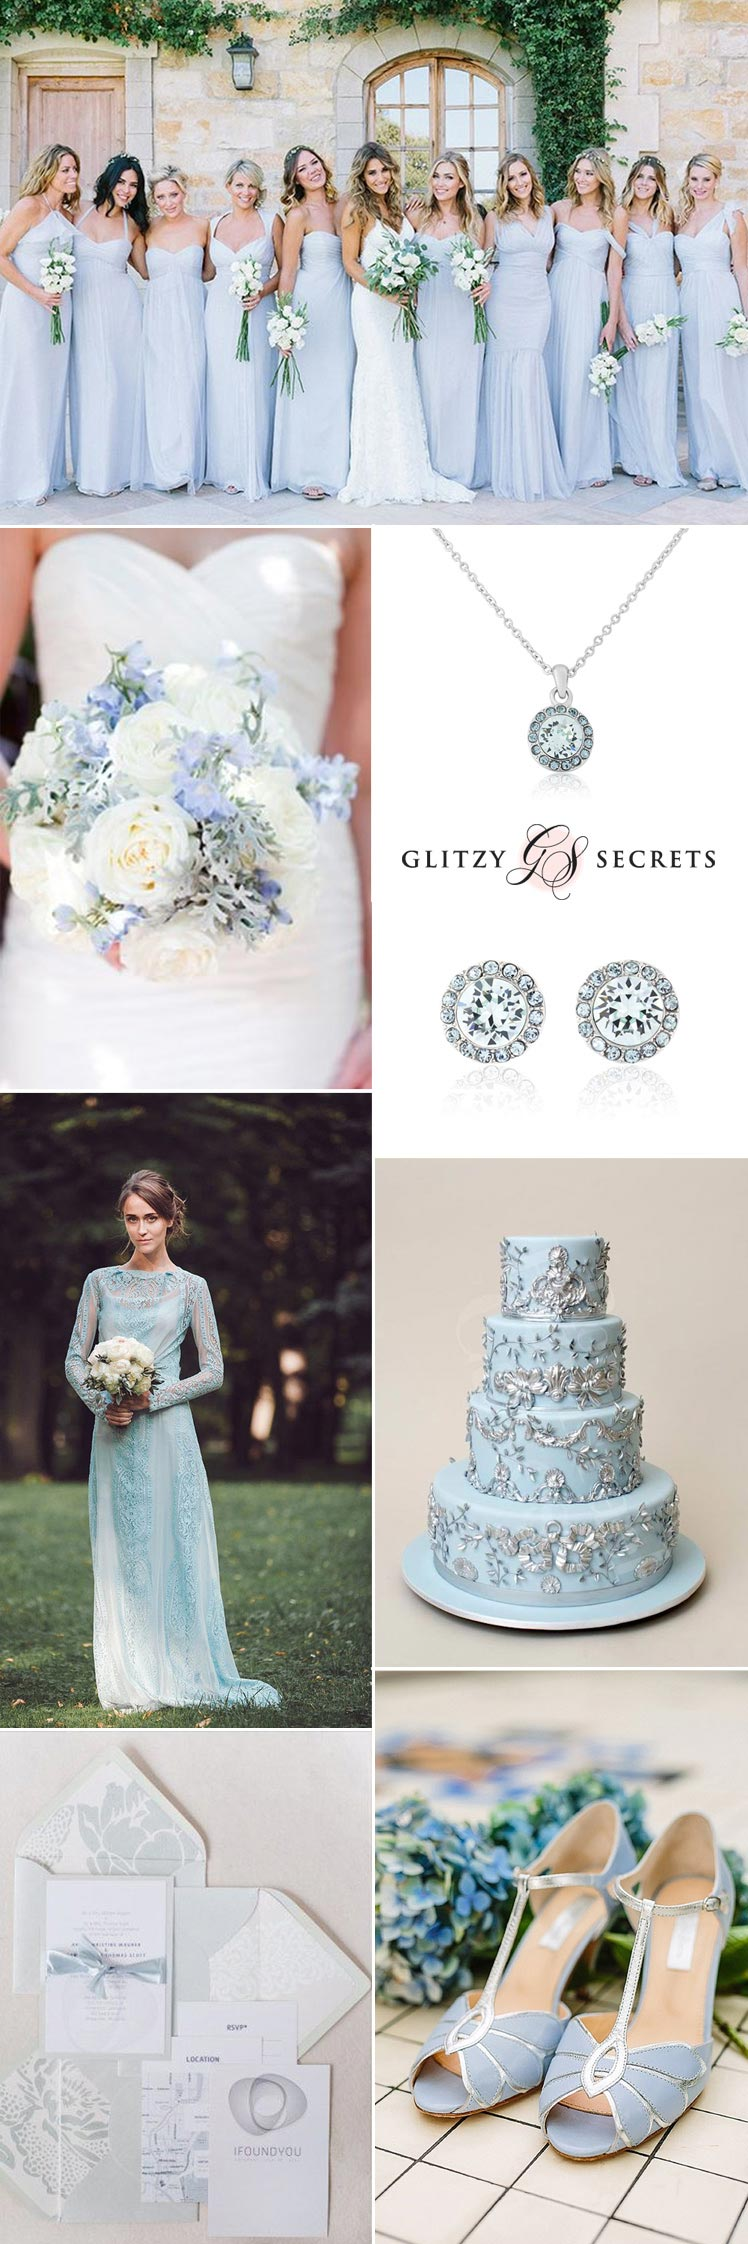 pale blue and silver wedding ideas